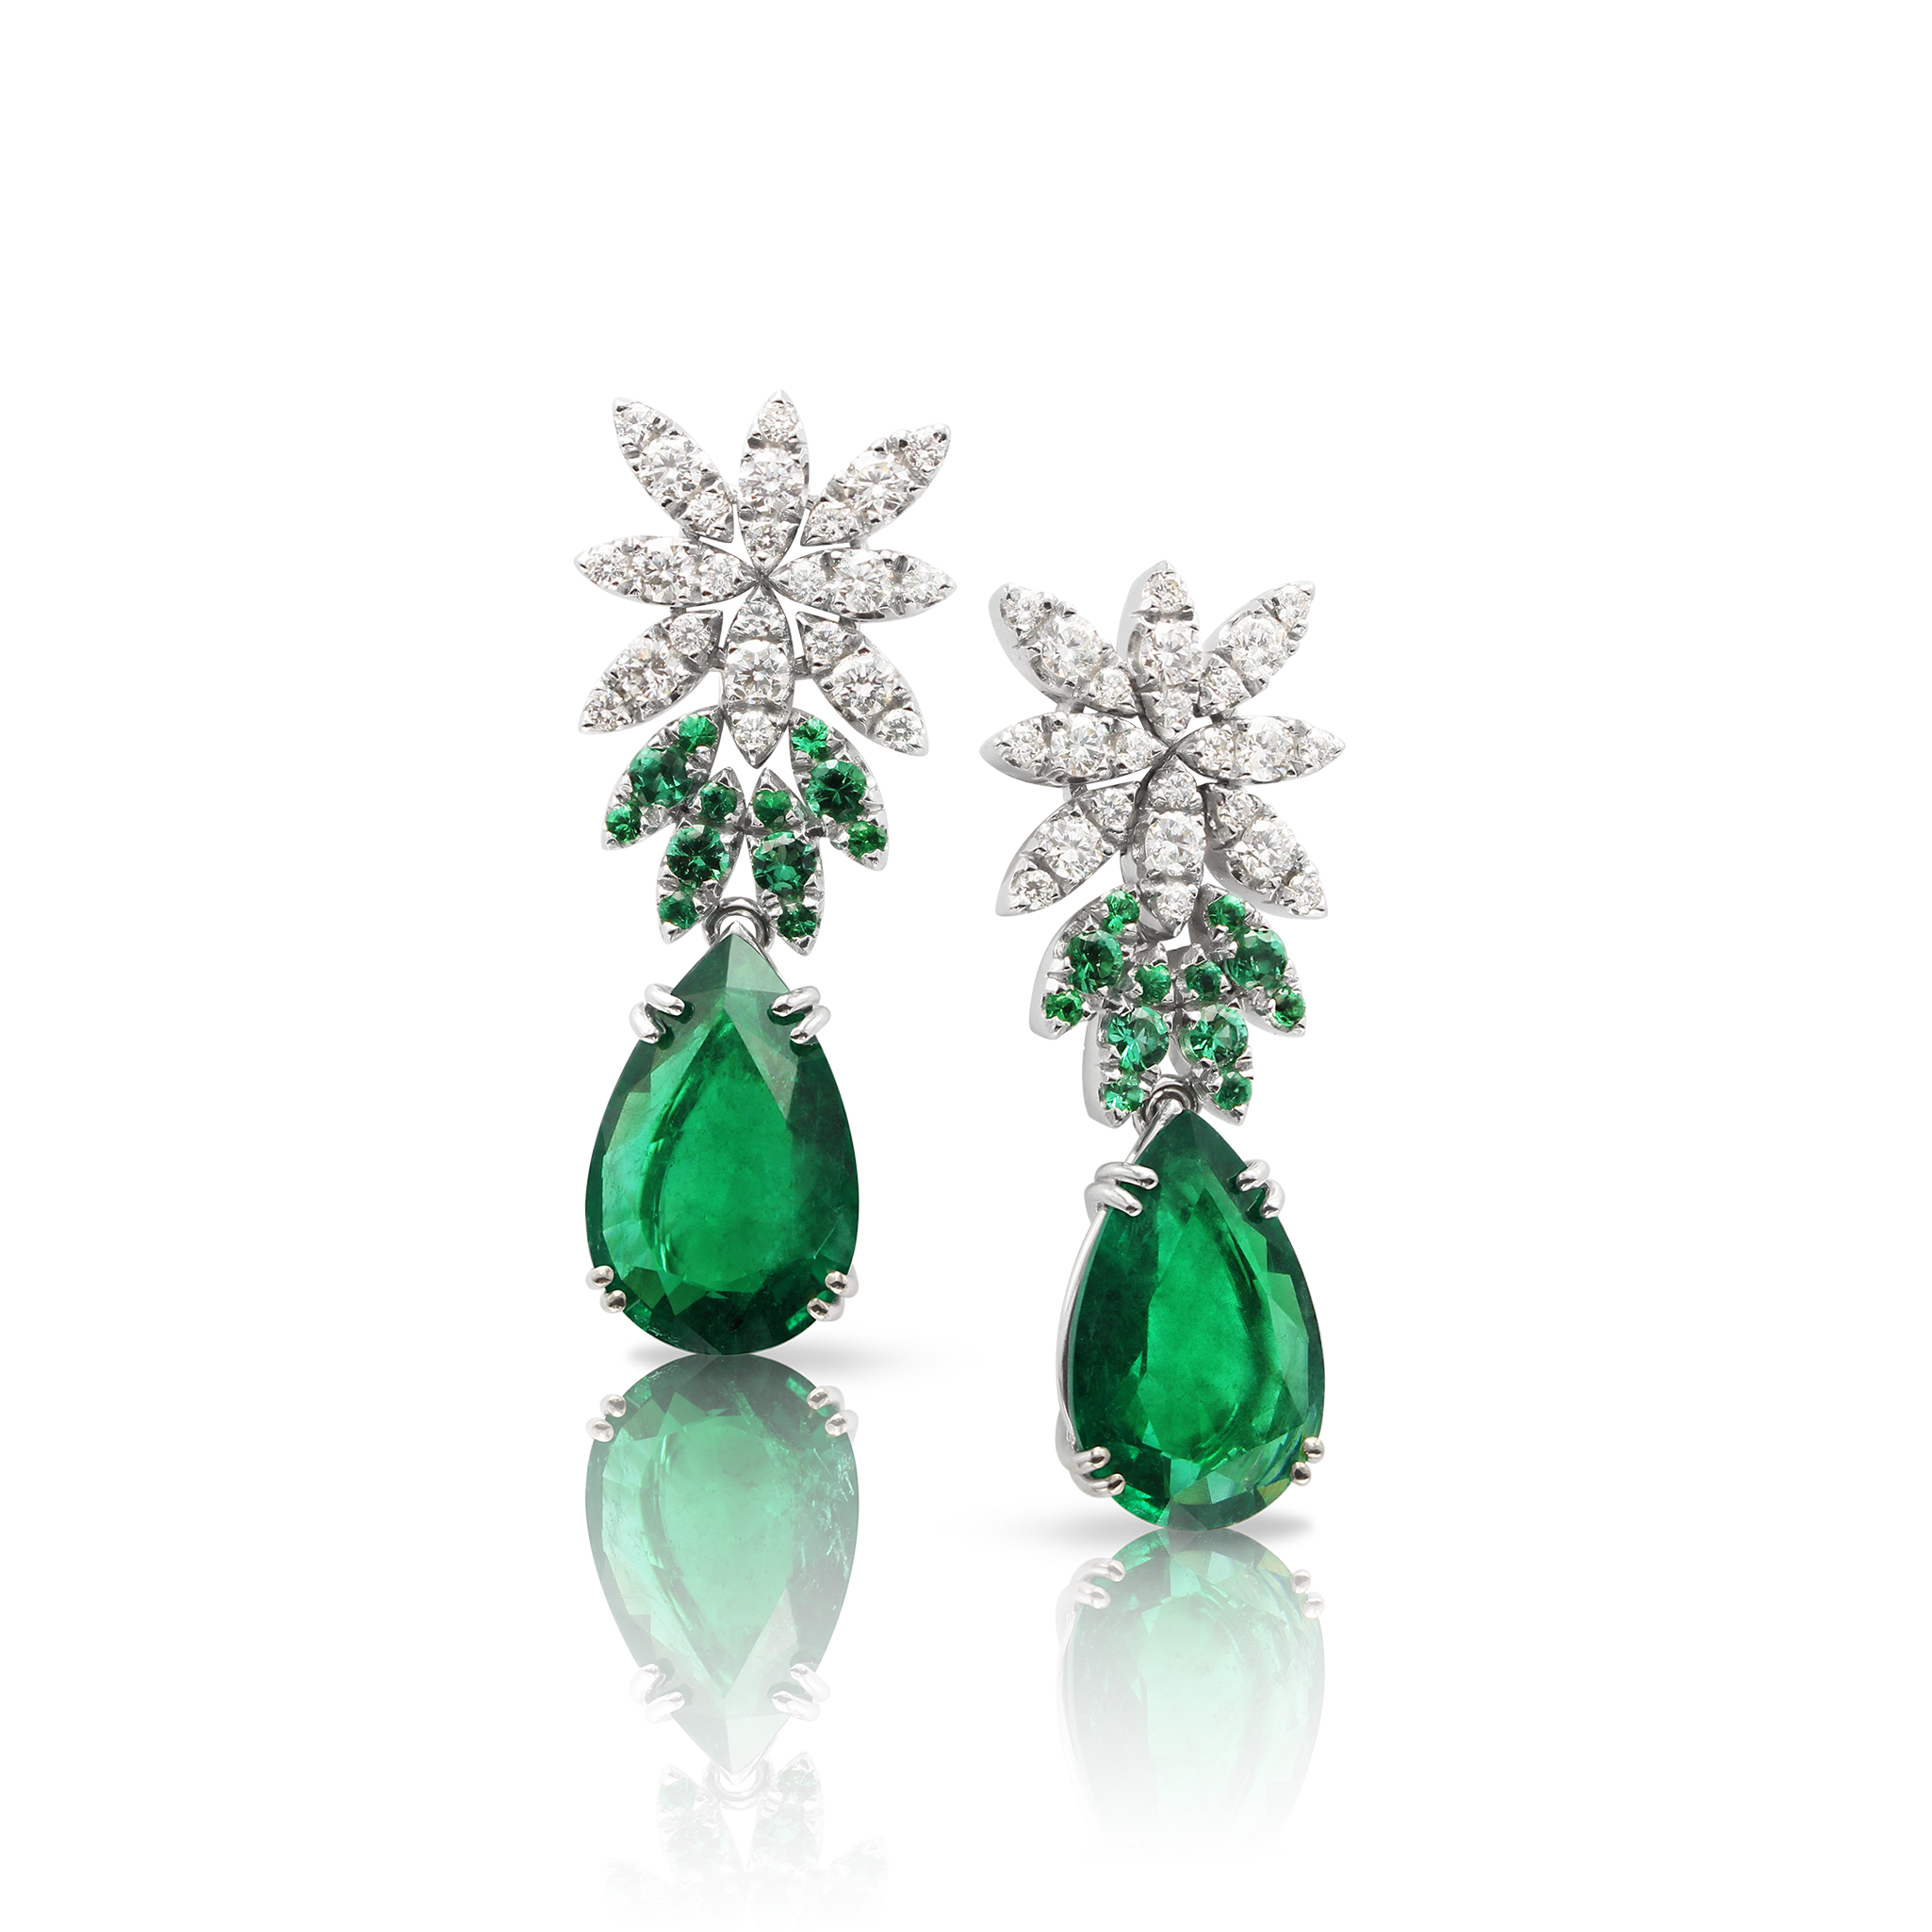 18k White Gold Ghirlanda Haute Couture Earrings with Emeralds and Diamonds